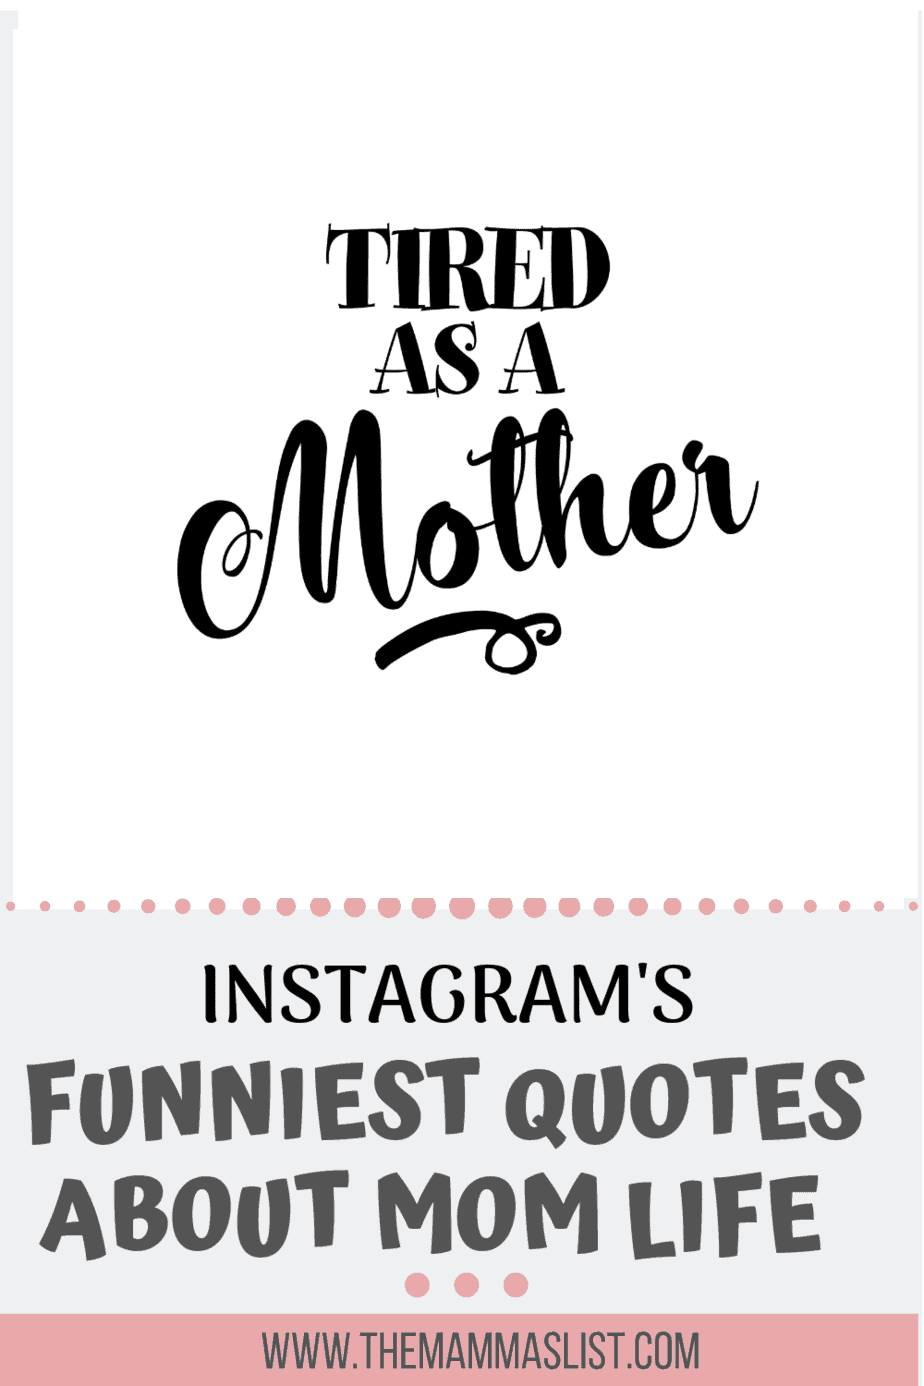 The funniest parenting quotes of Instagram - you\'re not alone!